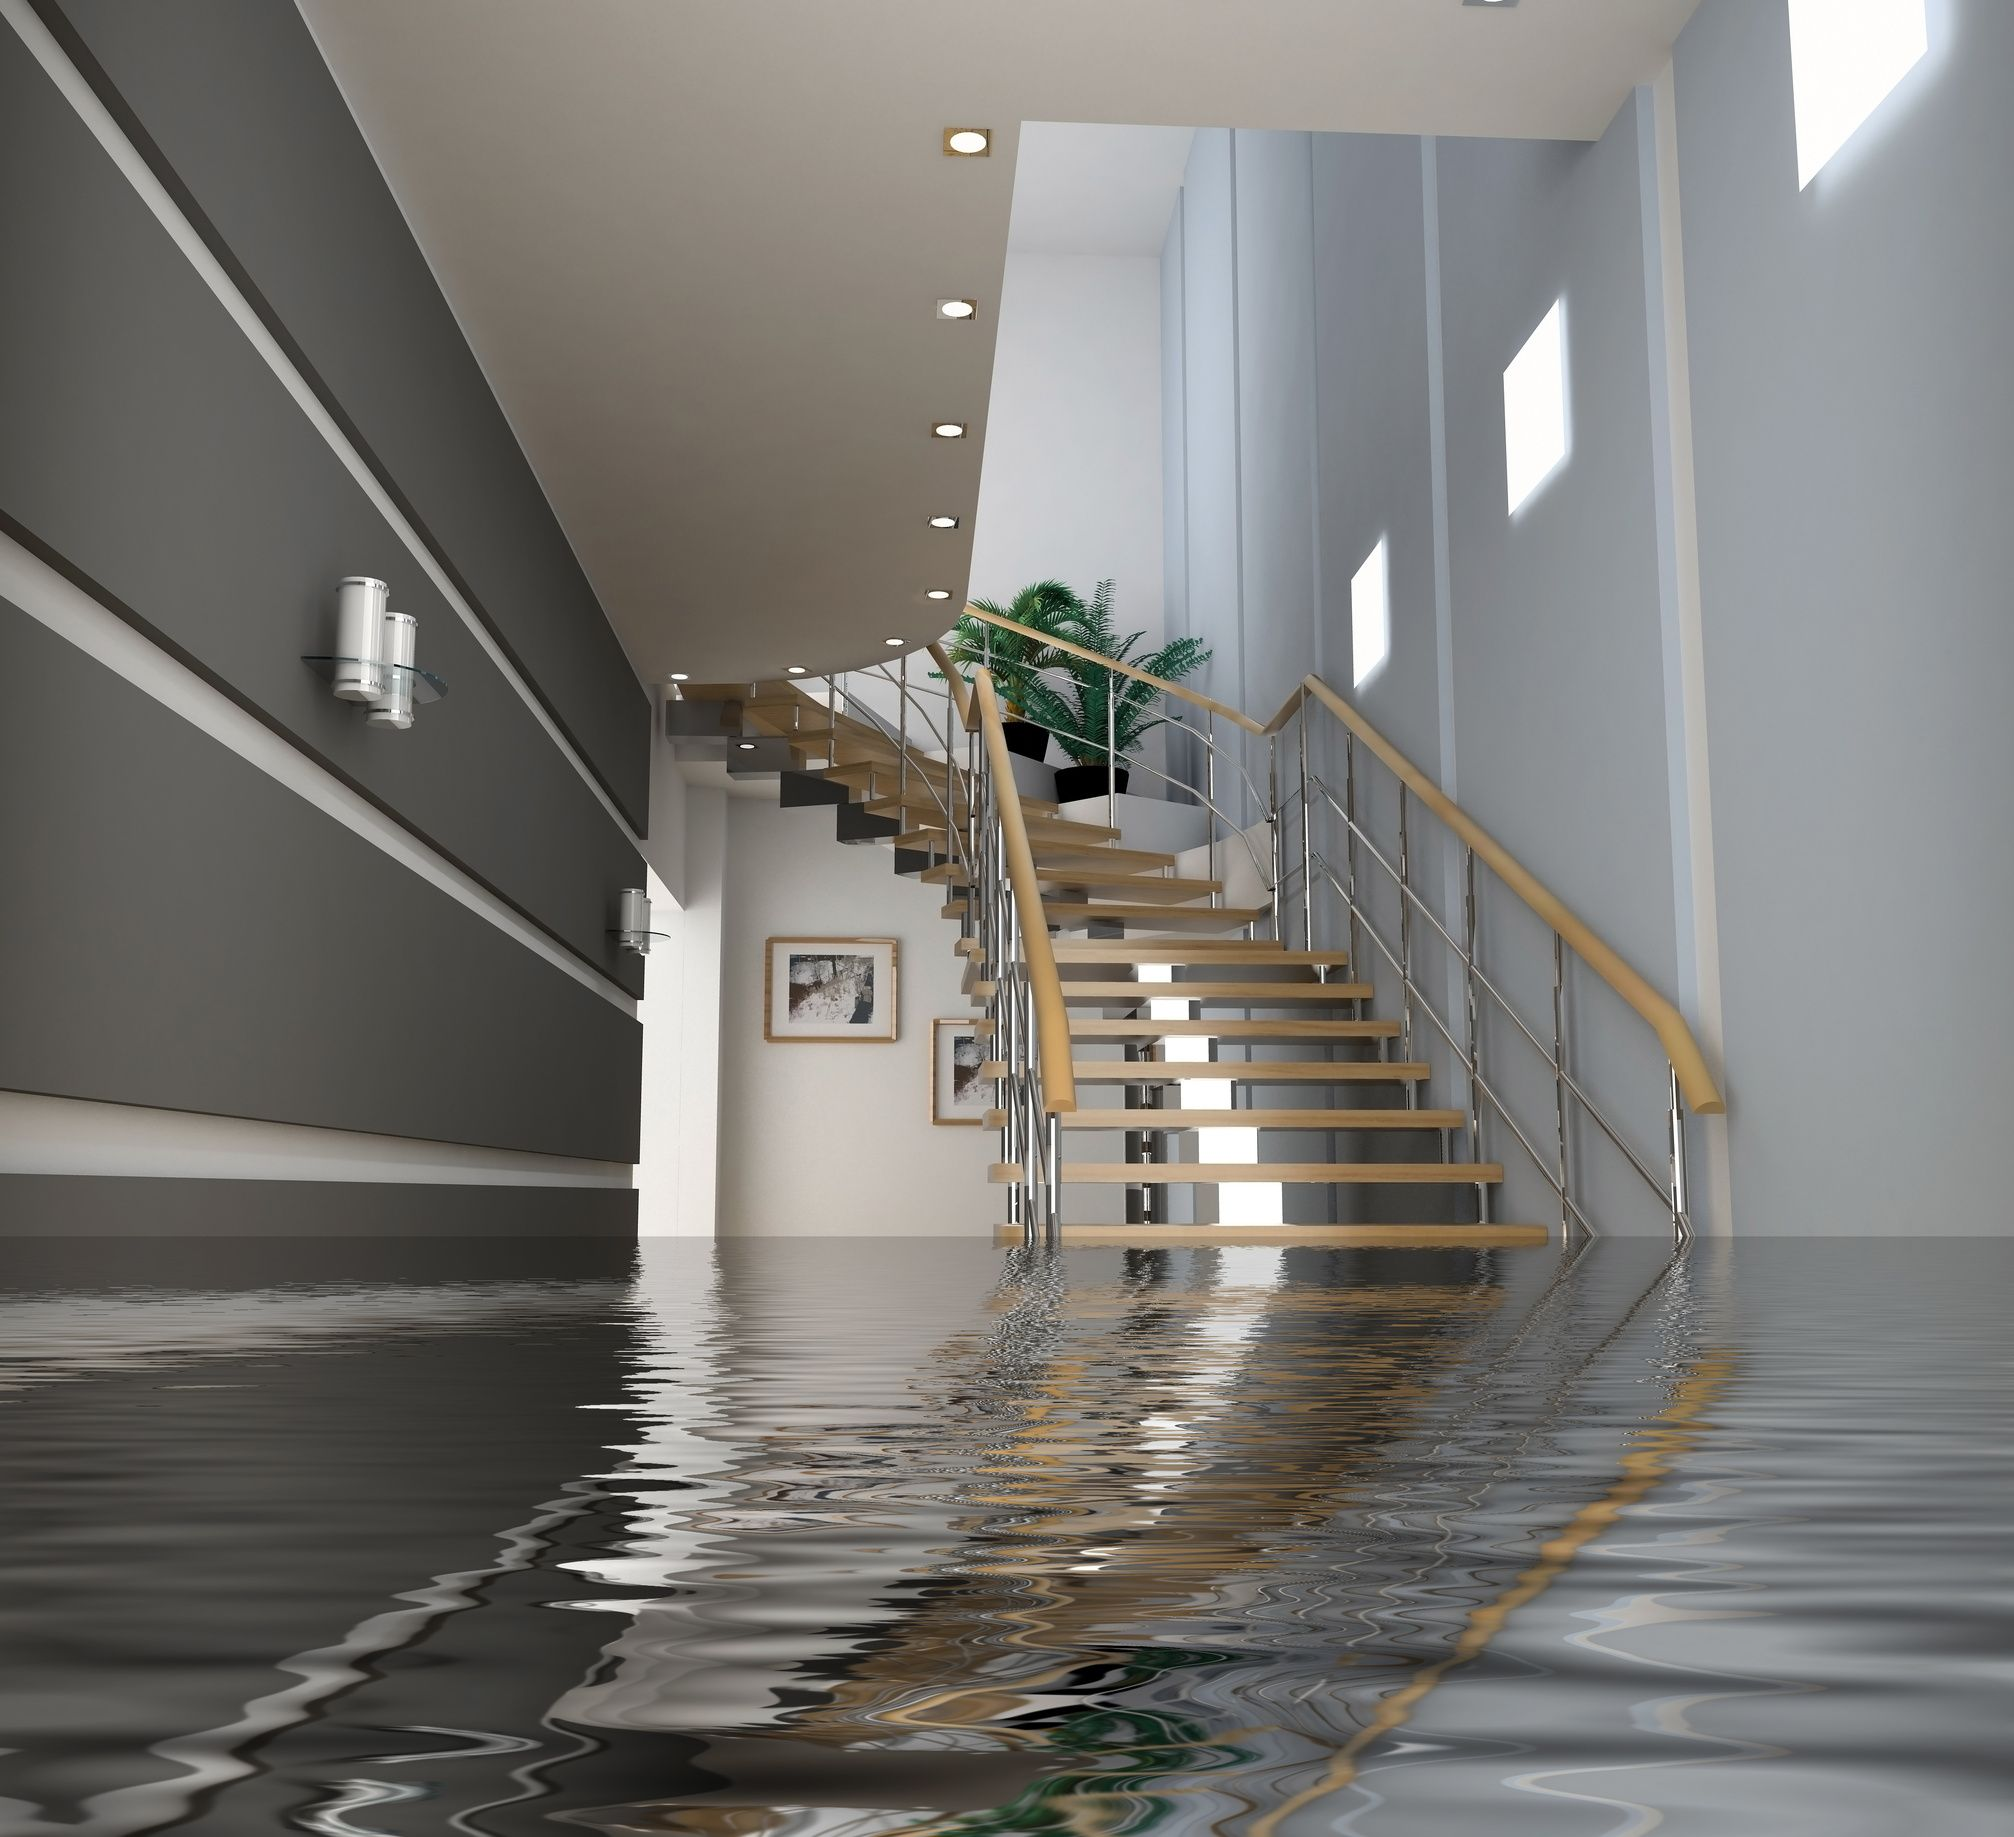 Basement Affordable Basement Flooding What To Do Basement